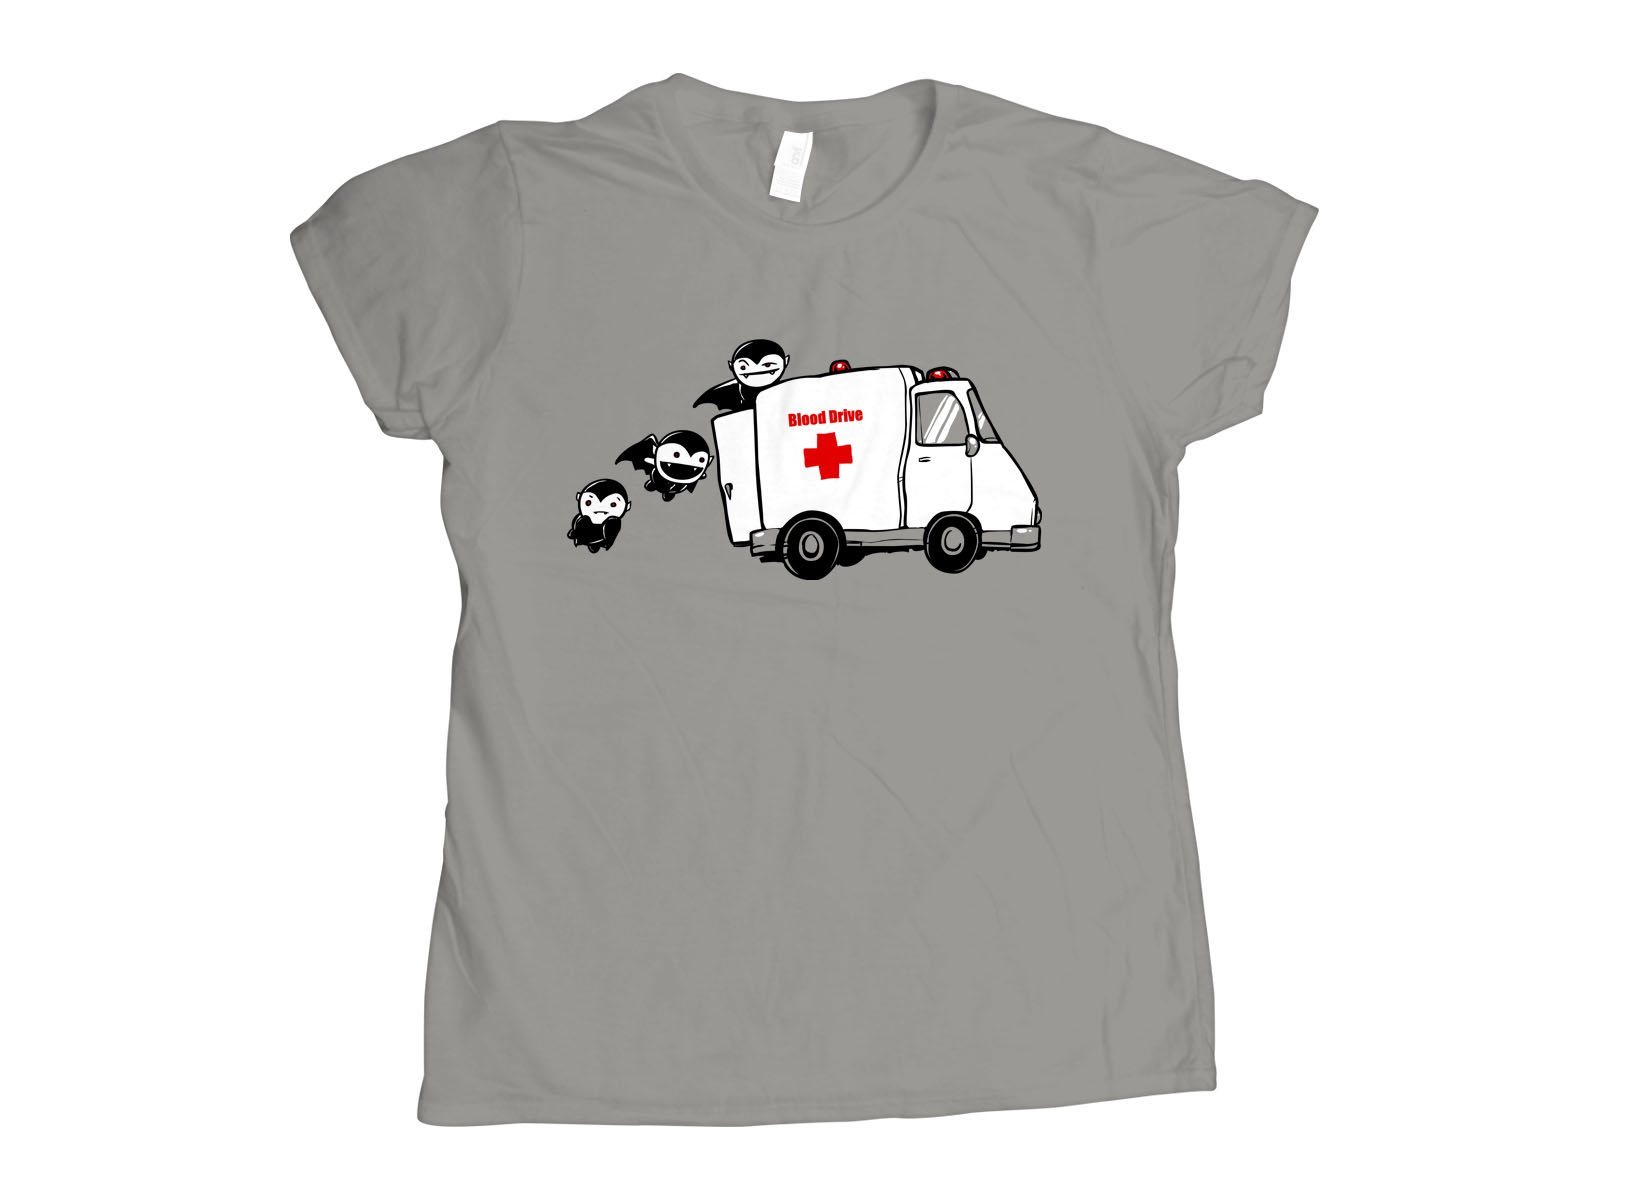 Blood Drive Vampires on Womens T-Shirt